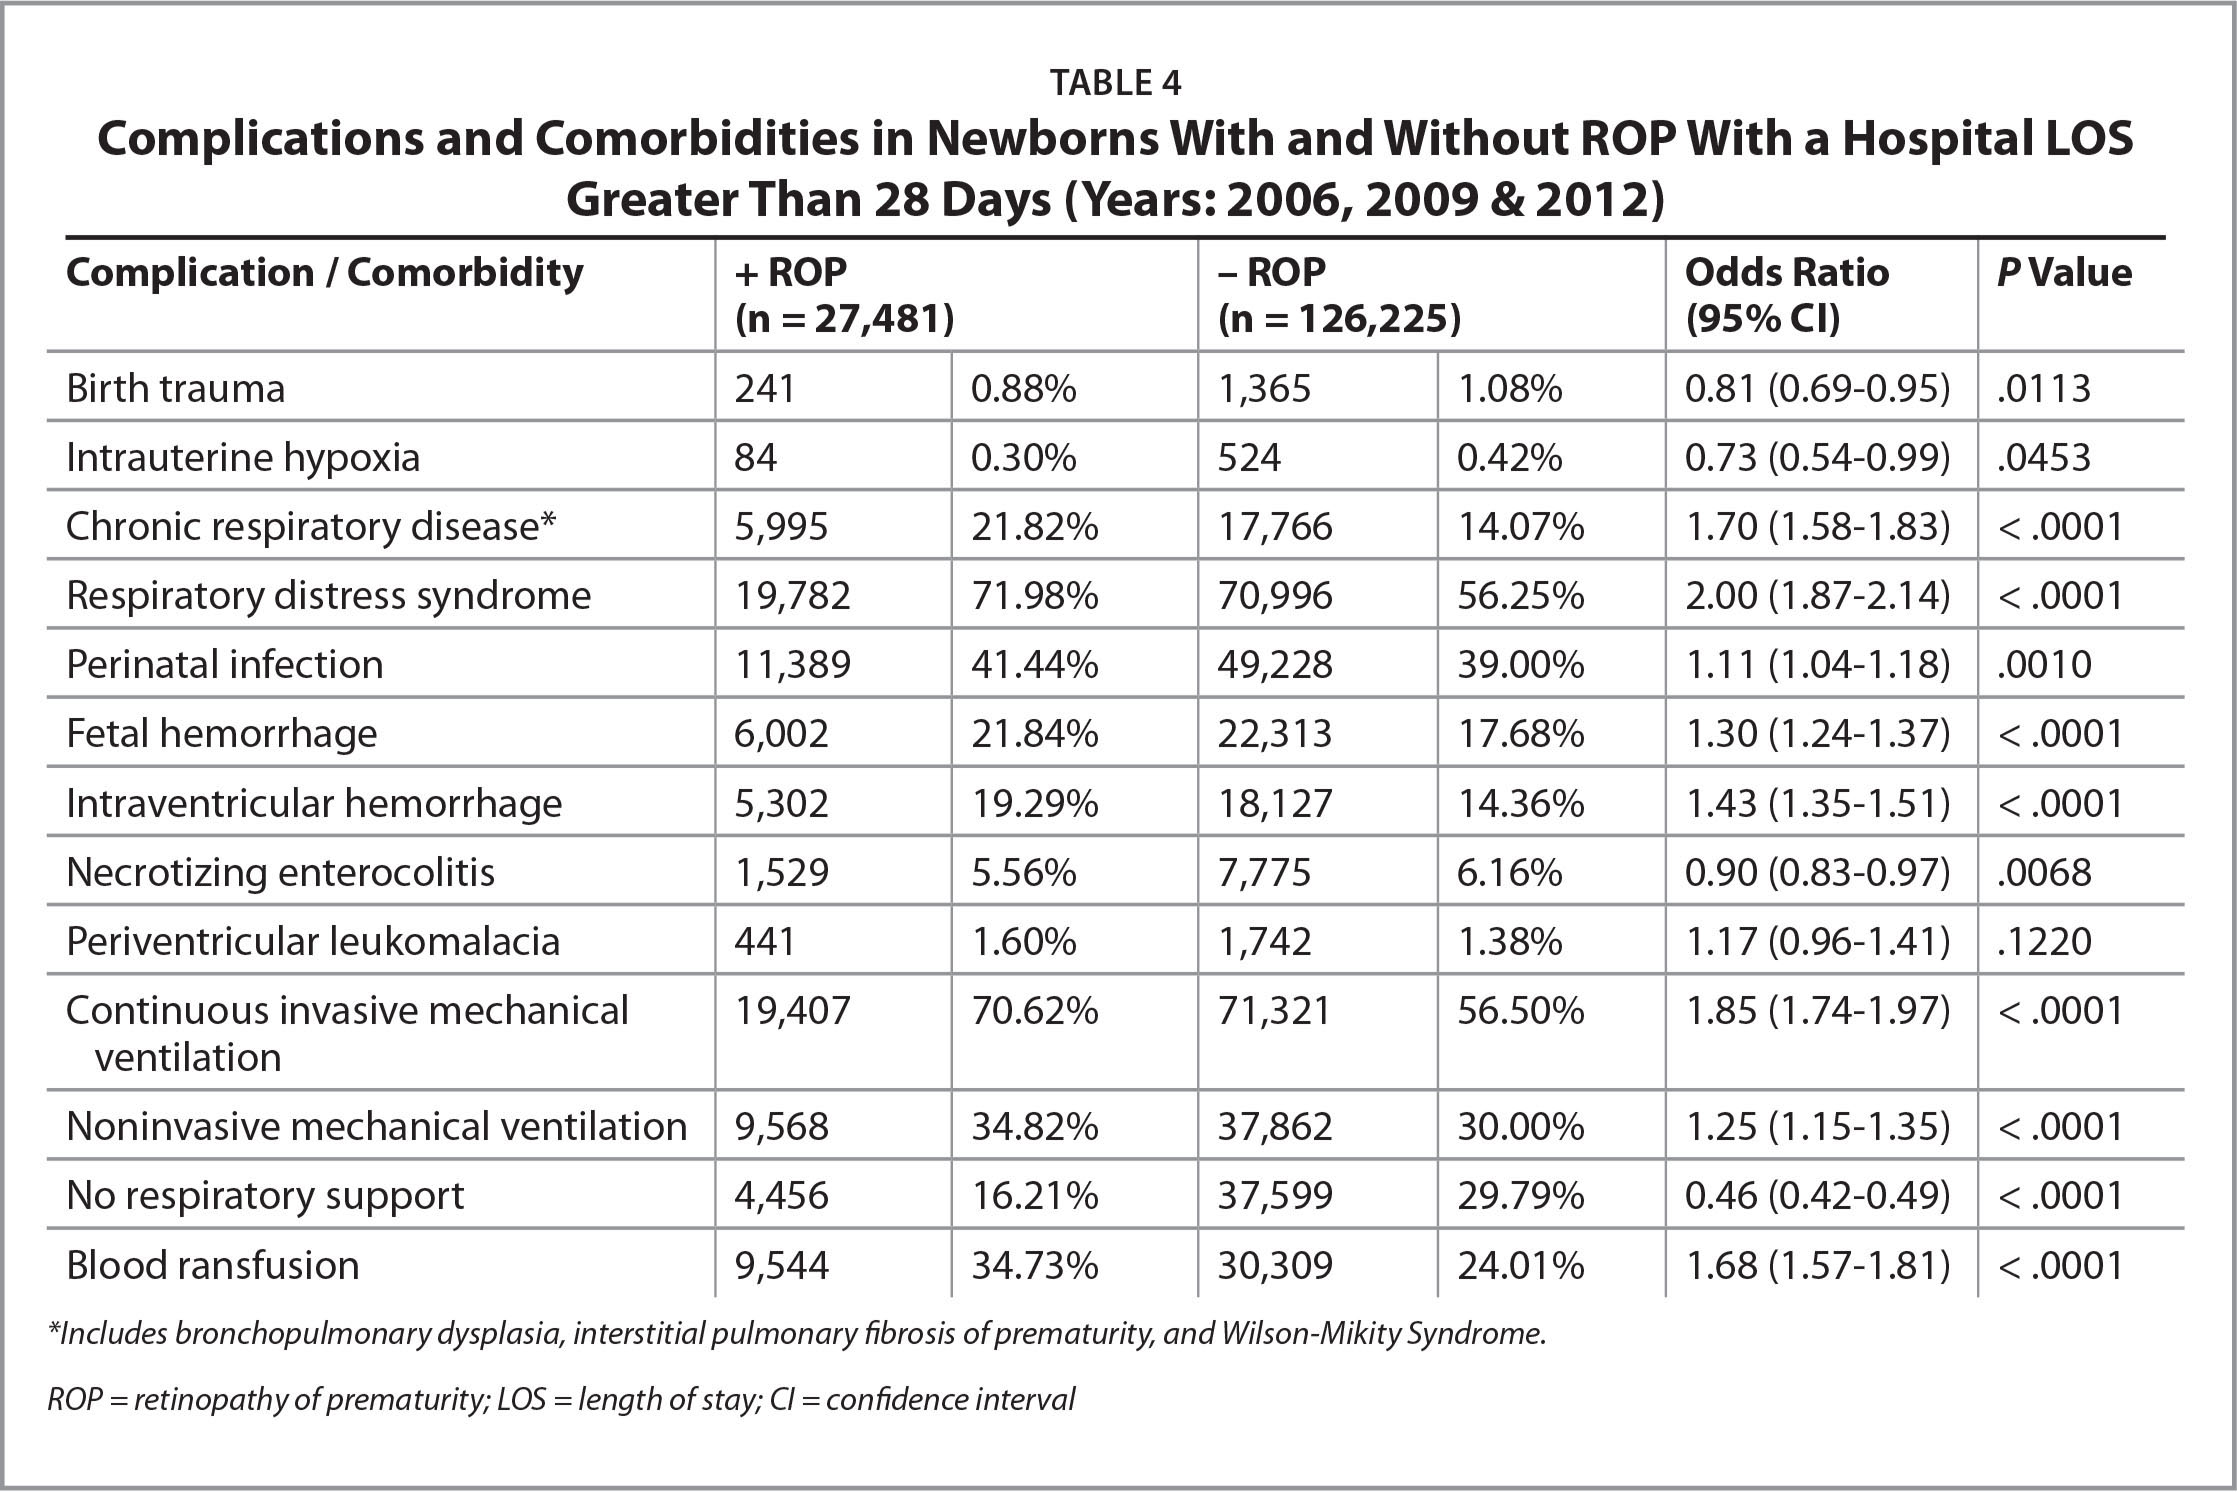 �A;Complications and Comorbidities in Newborns With and Without ROP With a Hospital LOS Greater Than 28 Days (Years: 2006, 2009 & 2012)�A;